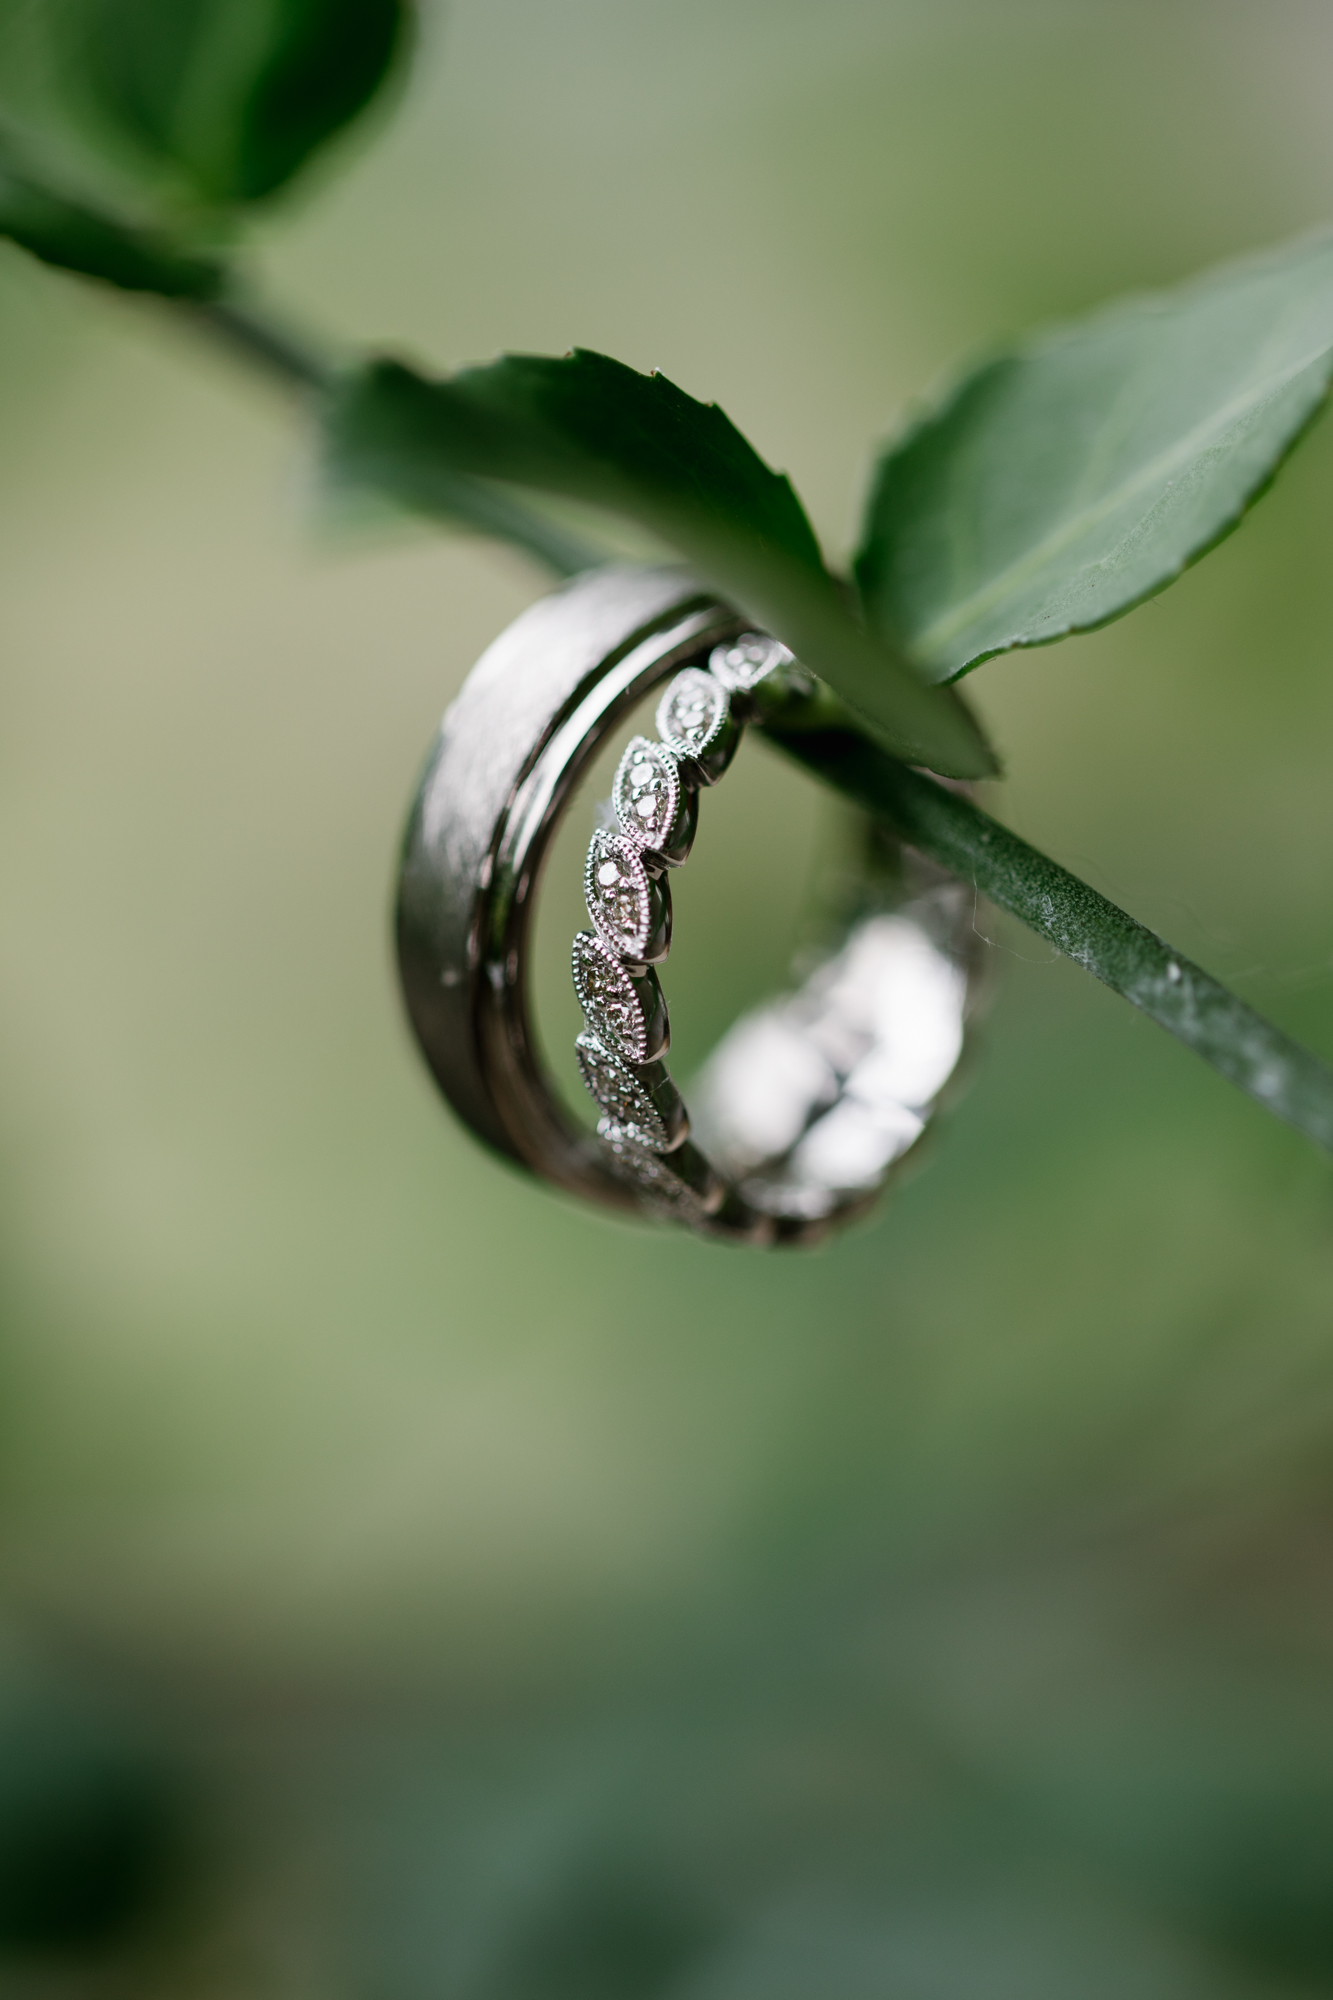 Ring photography from a wedding at Indiana University in Bloomington, Indiana.